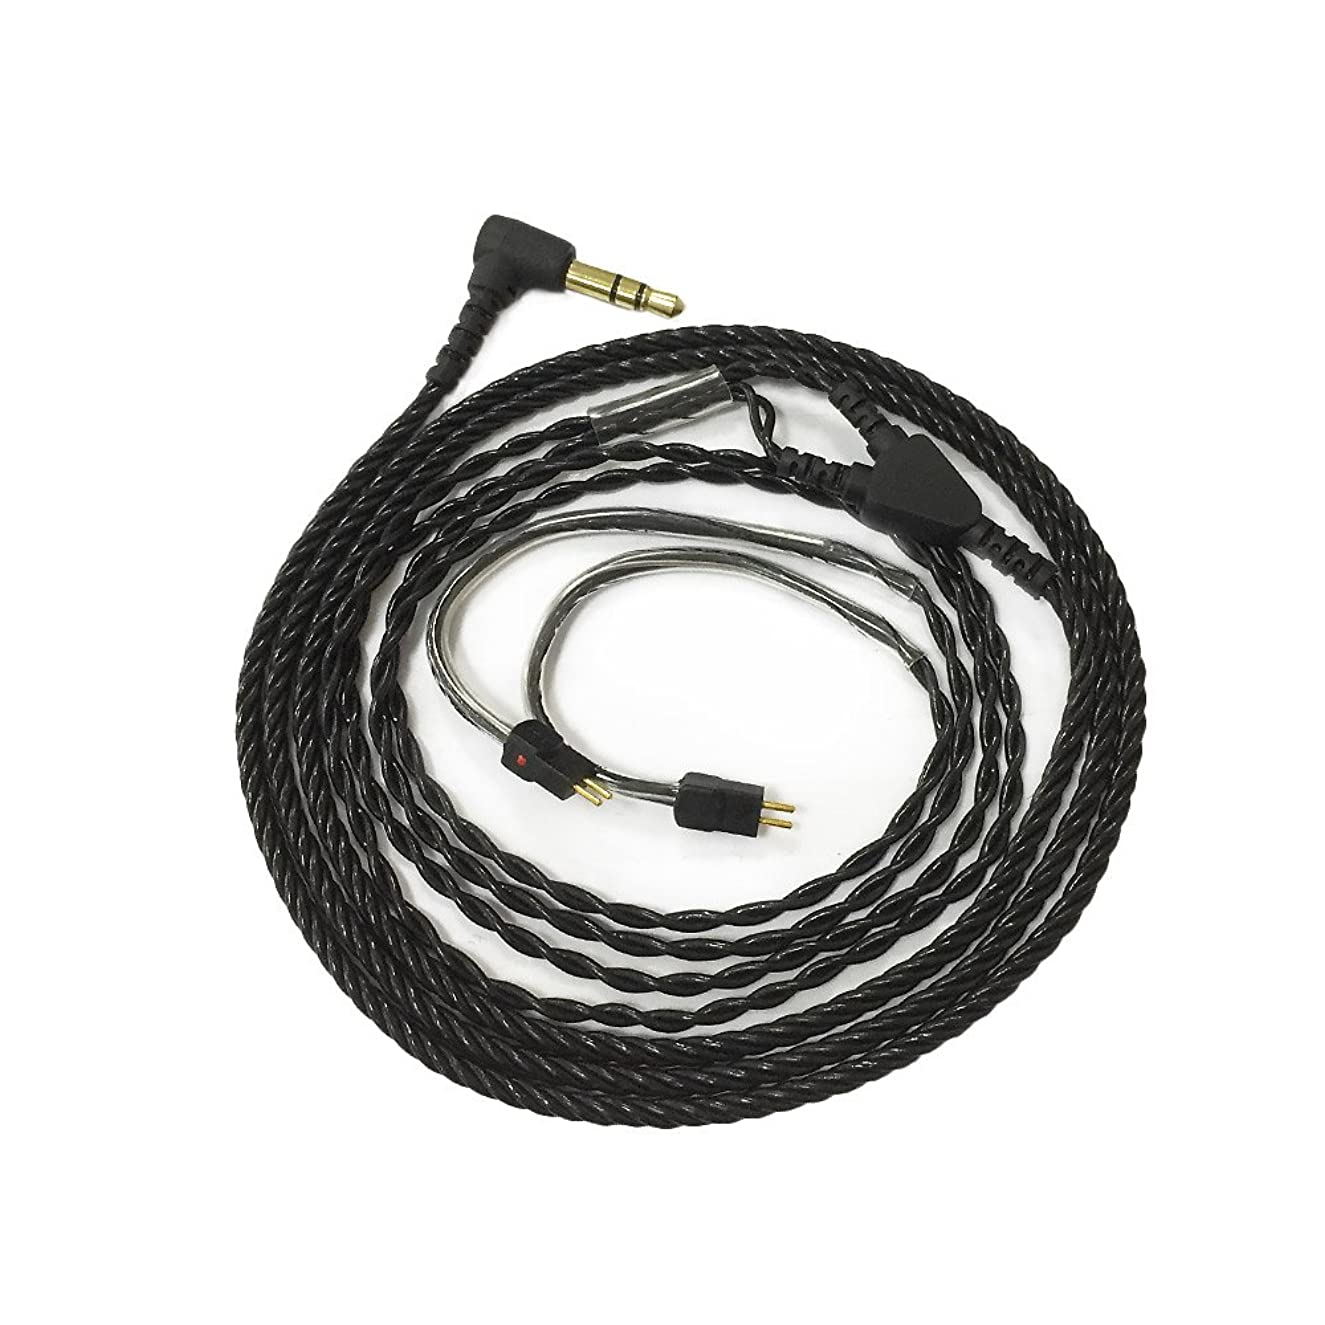 Upgraded Earphone Cable Wire for In-ear Musician Monitors 2 Pin Connector